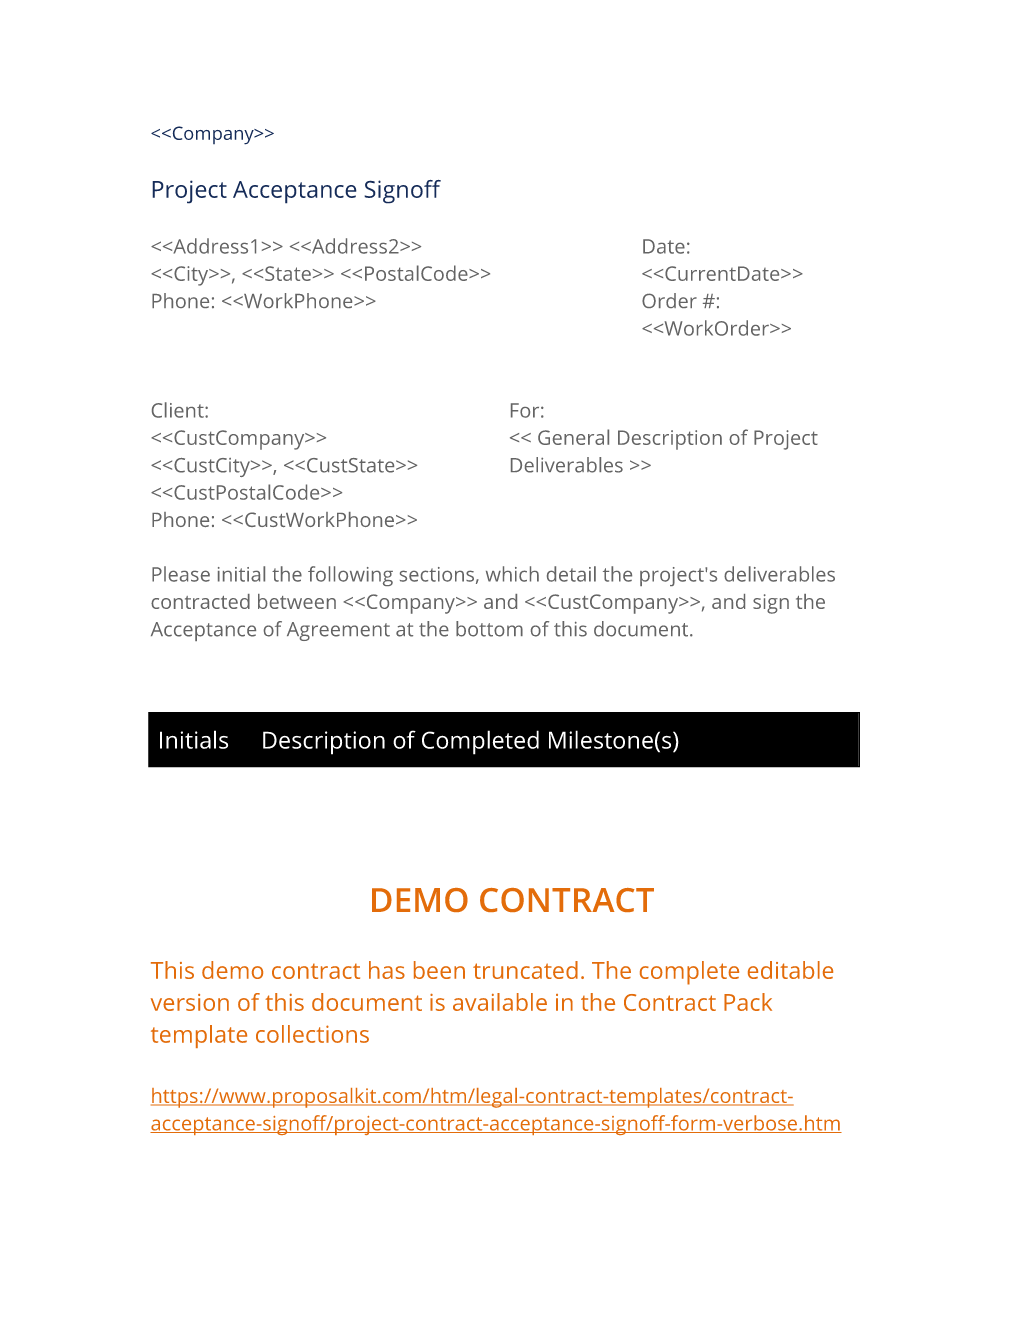 Project Contract Acceptance Signoff Form (Verbose)